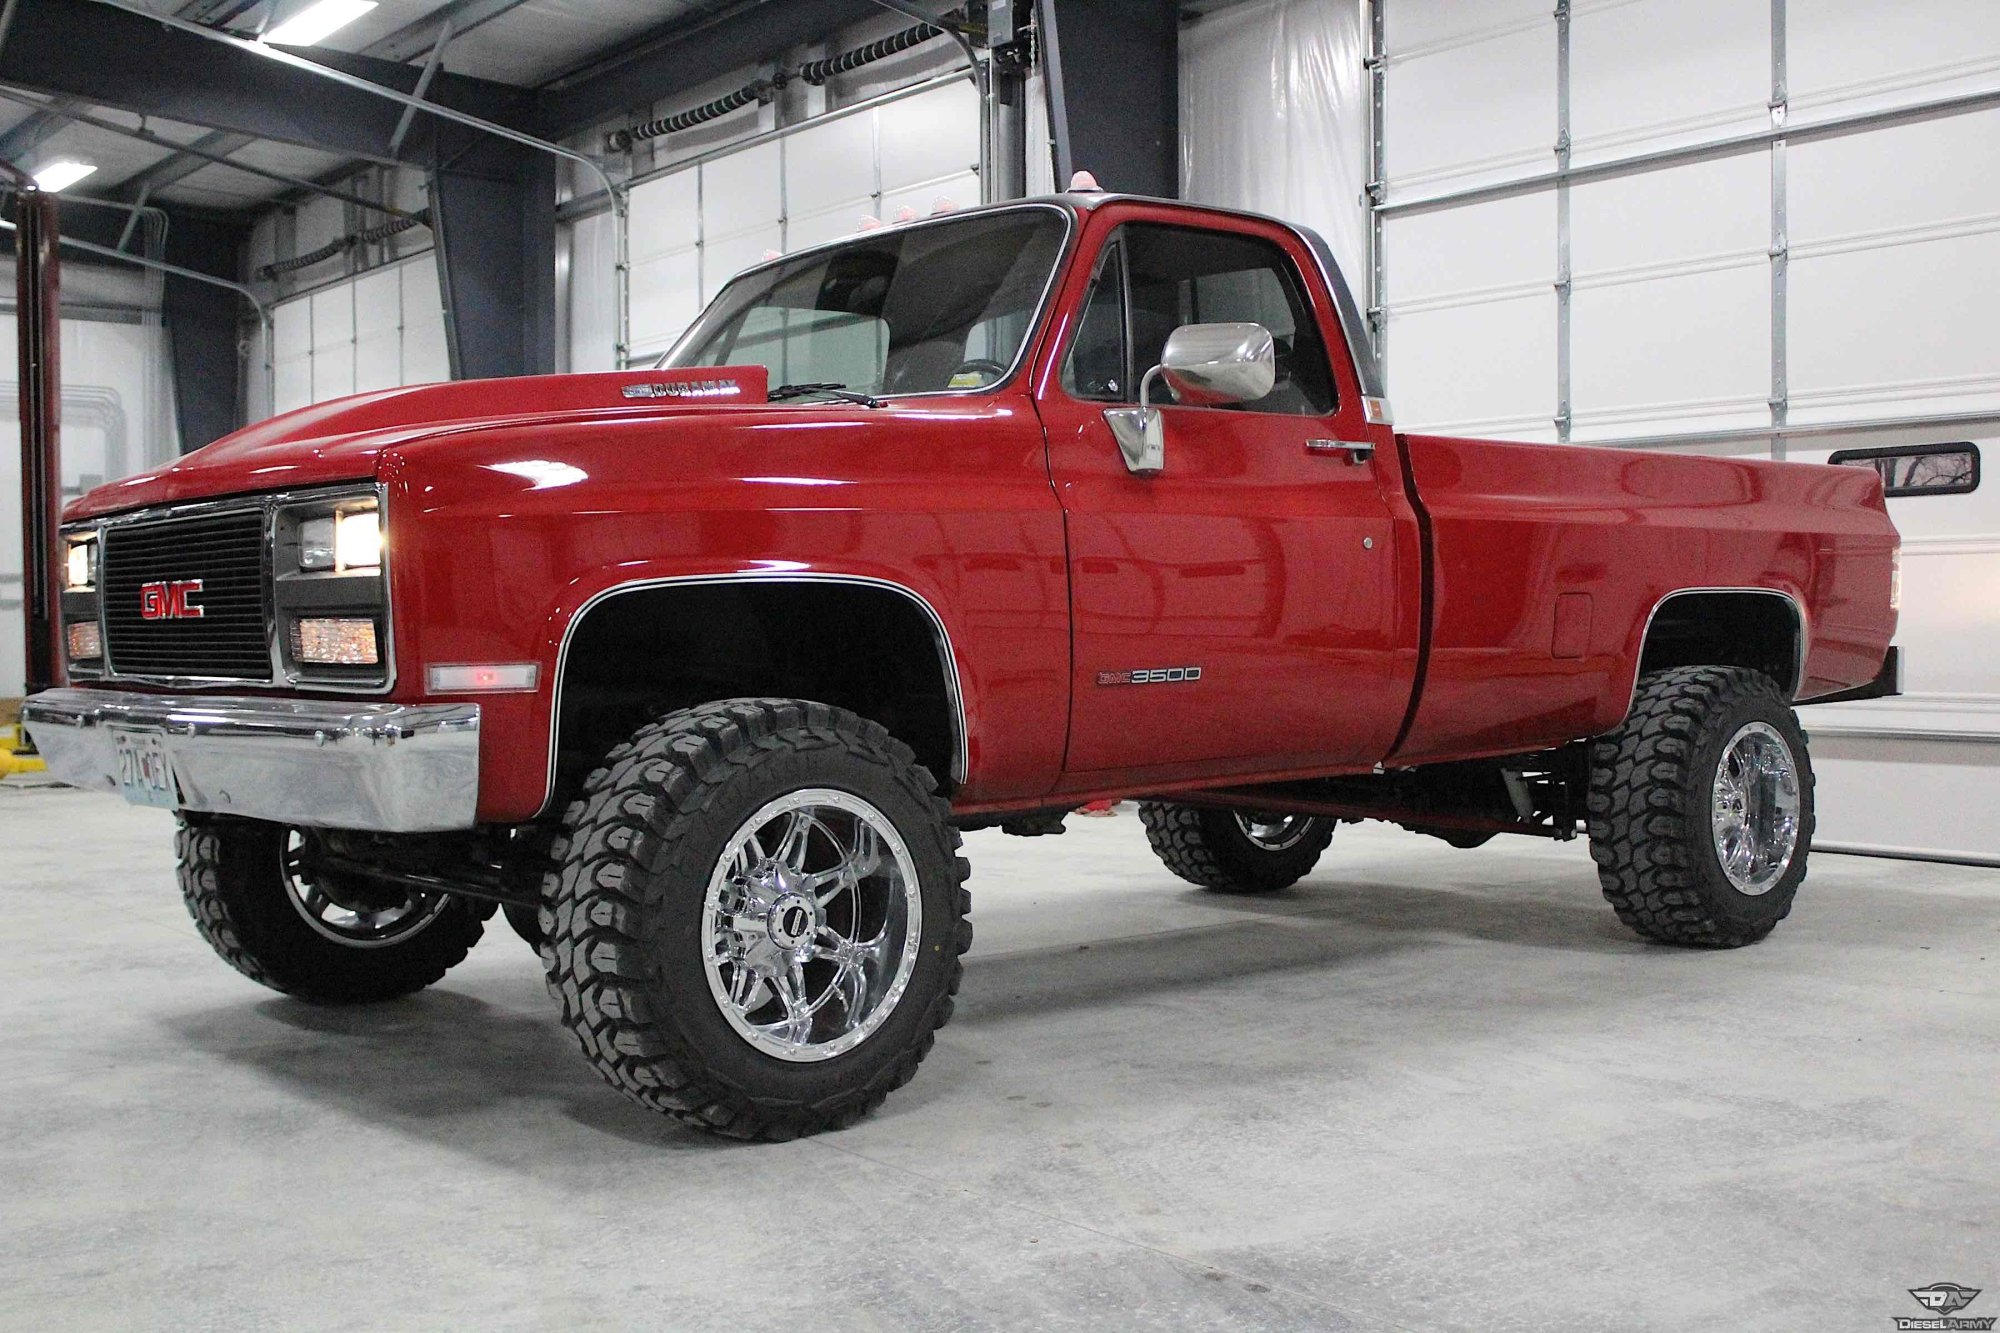 hight resolution of the nostalgia of the older body style chevrolet and gmc trucks are somewhat astronomical when people get wind of a clean square body it sparks massive